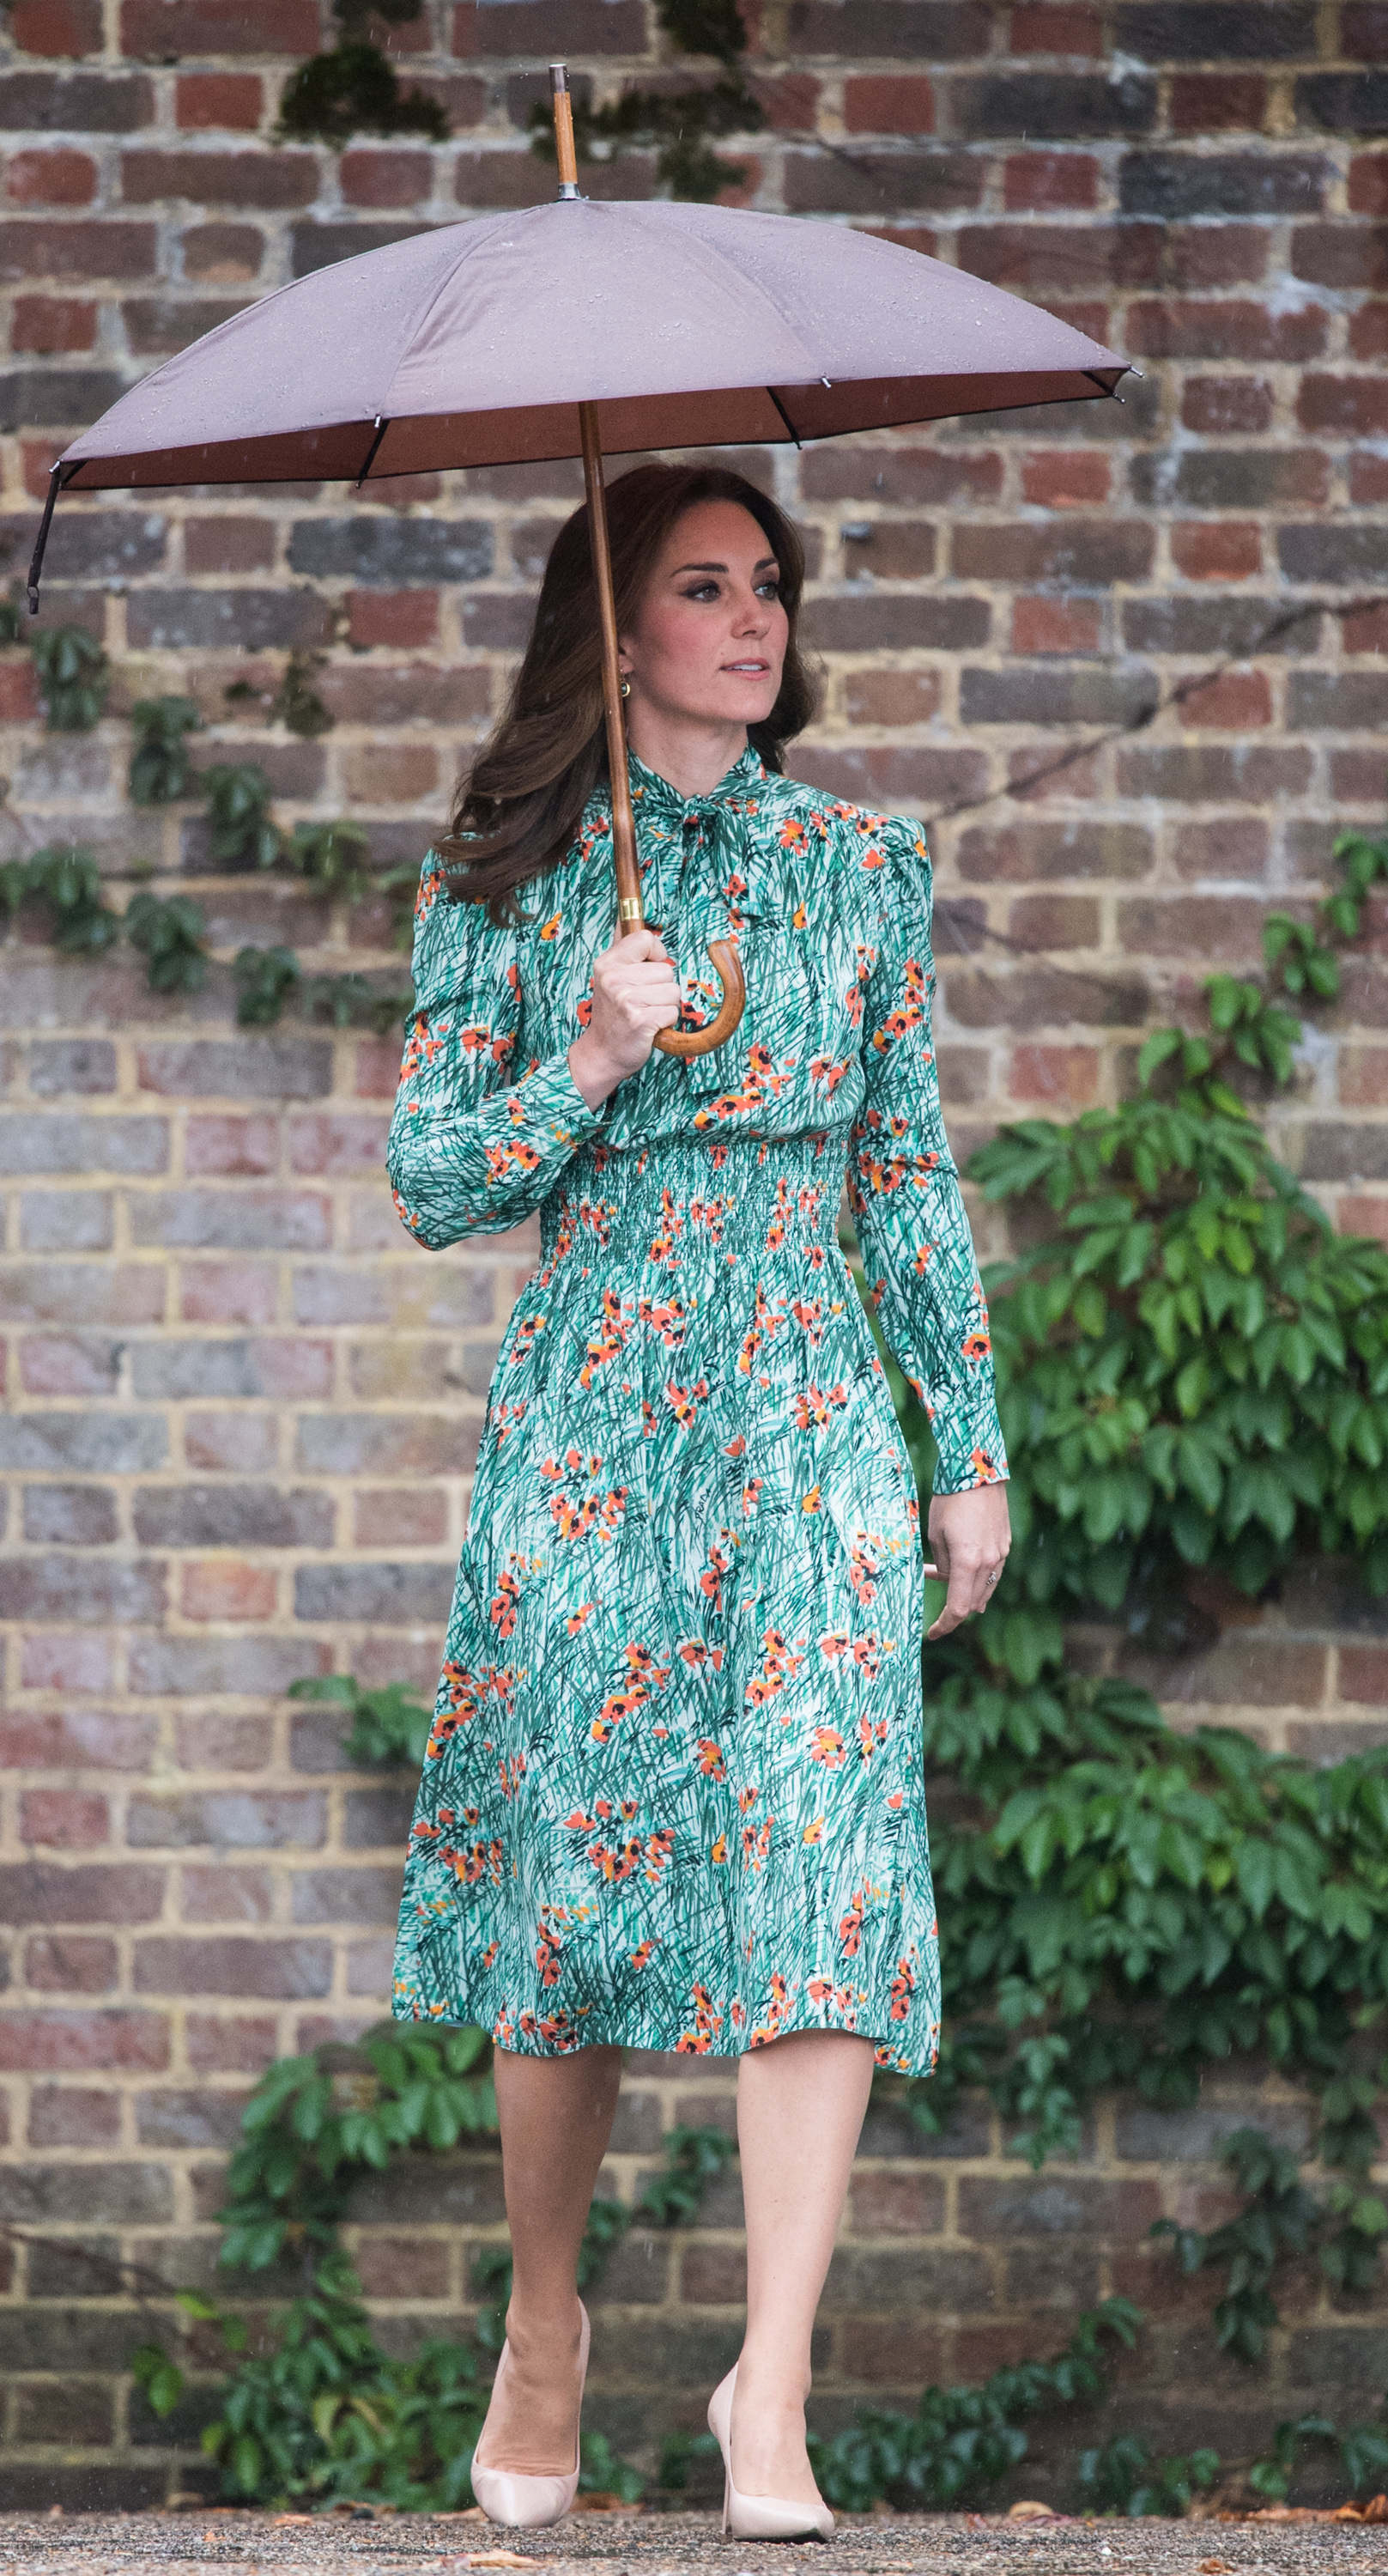 LONDON, ENGLAND - AUGUST 30:  Catherine, Duchess of Cambridge visits The Sunken Garden at Kensington Palace on August 30, 2017 in London, England.  The garden has been transformed into a White Garden dedicated in the memory of Princess Diana, mother of The Duke of Cambridge and Prince Harry.  (Photo by Samir Hussein/Samir Hussein/WireImage)